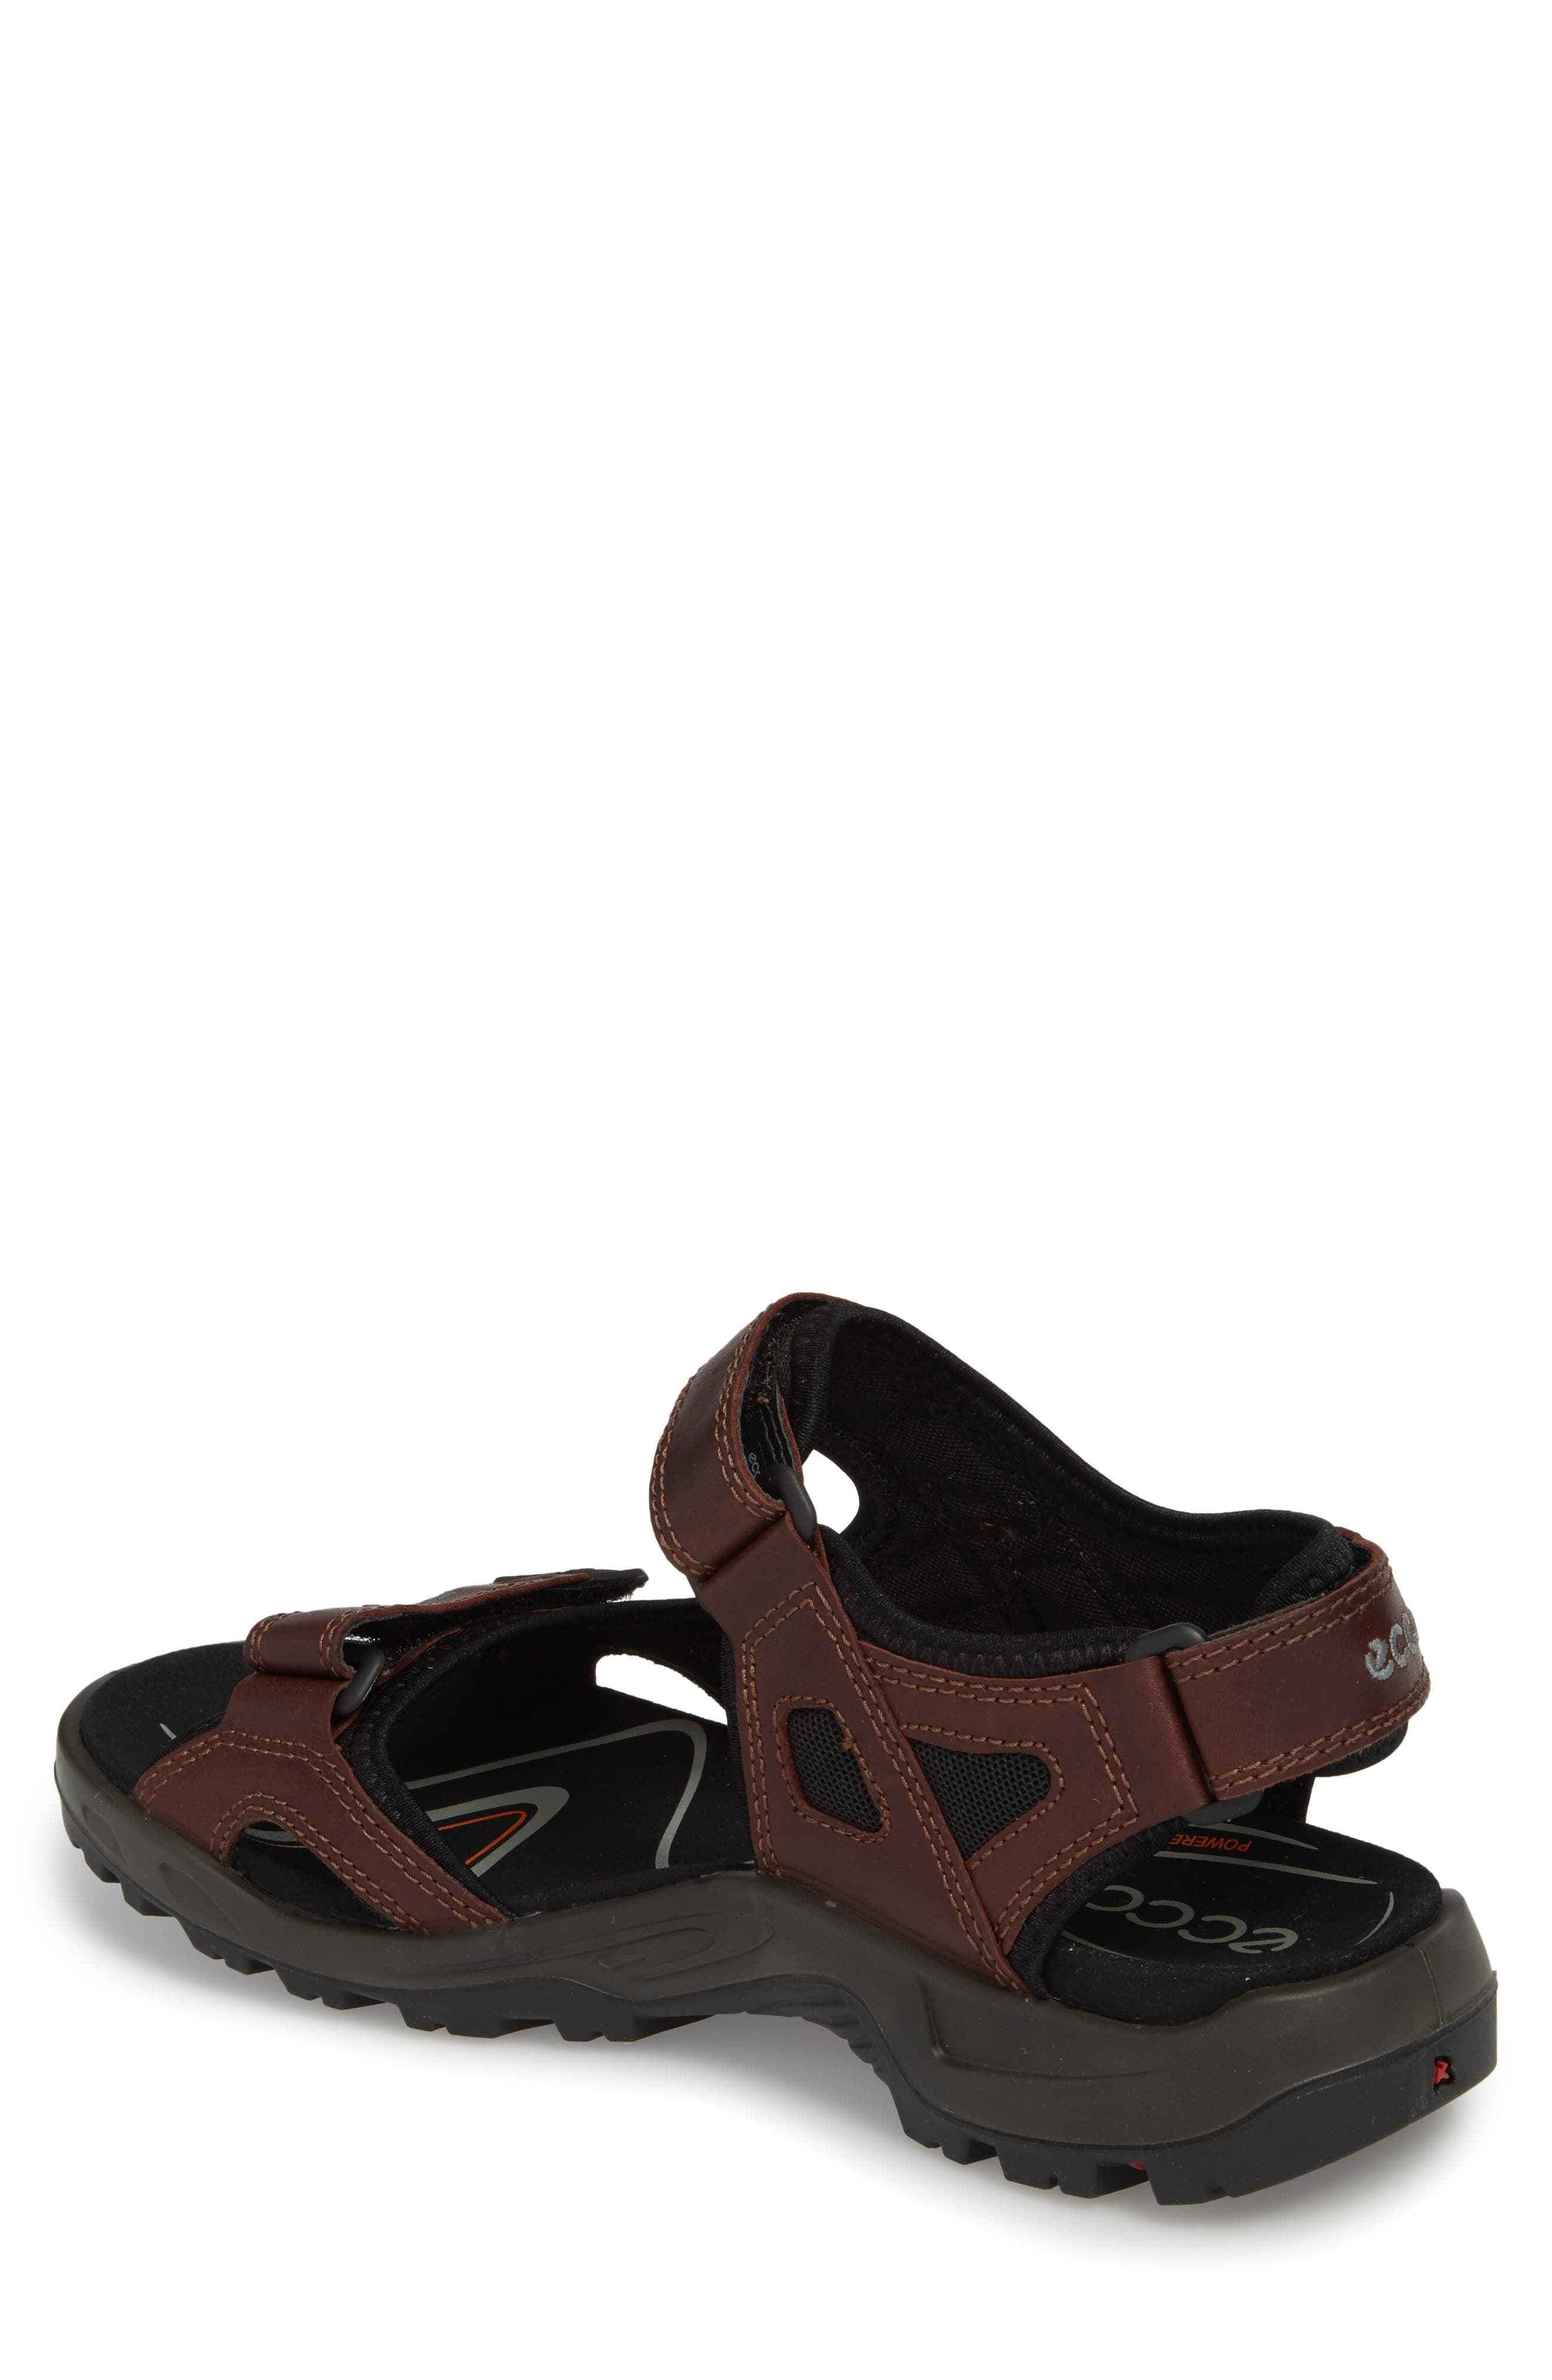 Offroad Sport Sandal,                             Alternate thumbnail 2, color,                             Brandy Leather